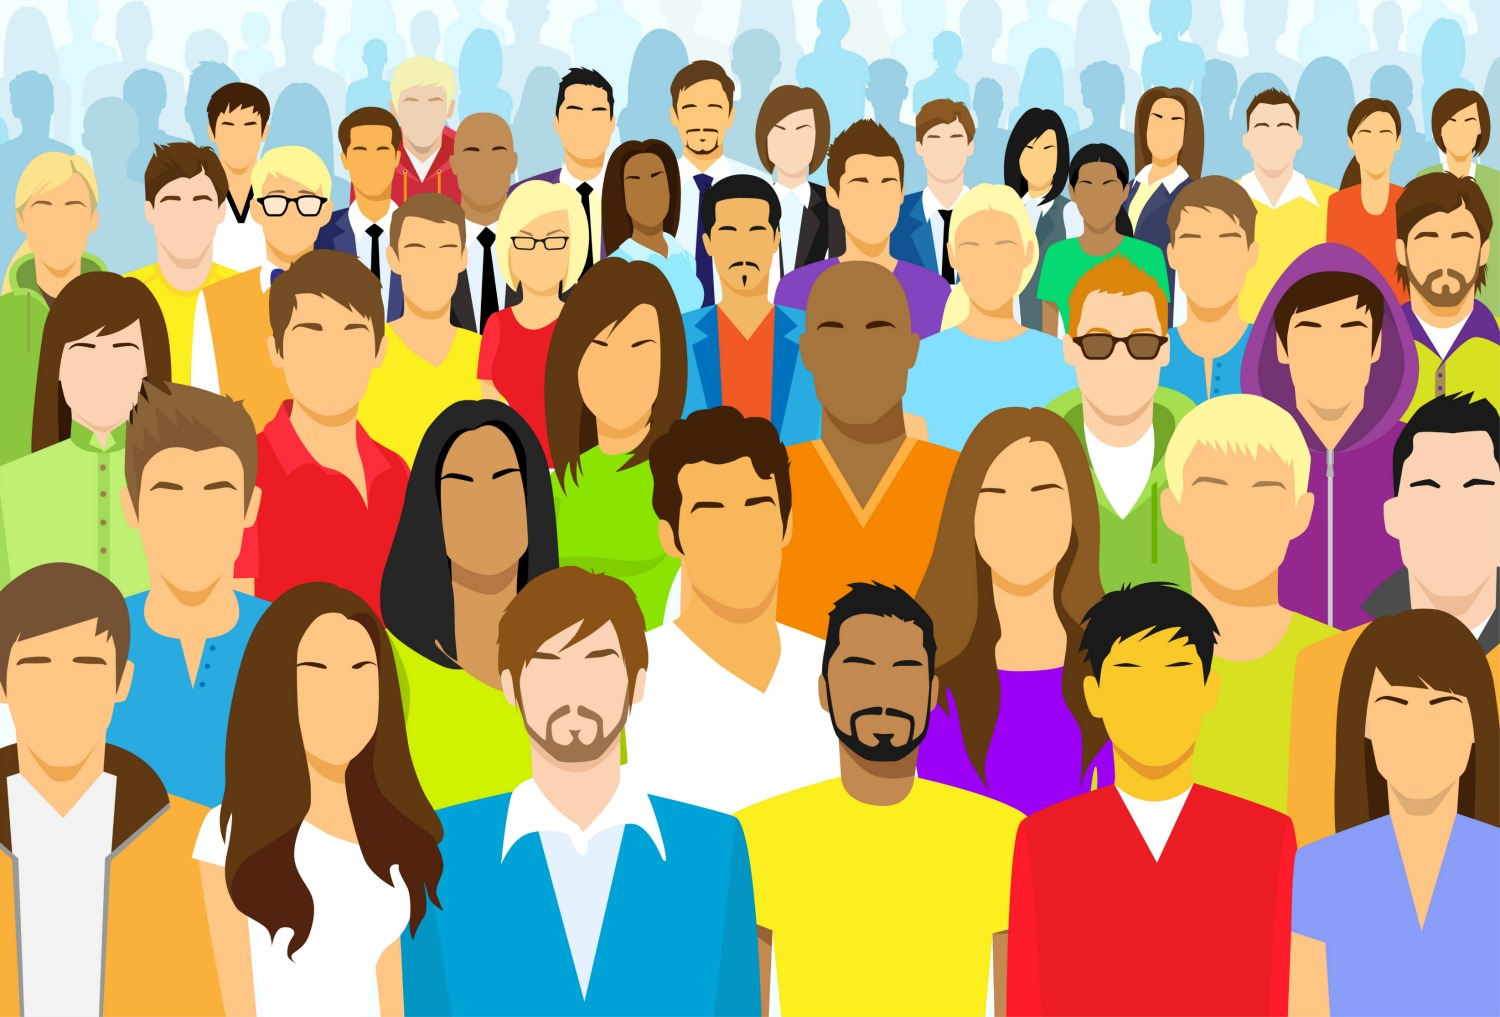 Crowd clipart crowded person, Crowd crowded person.